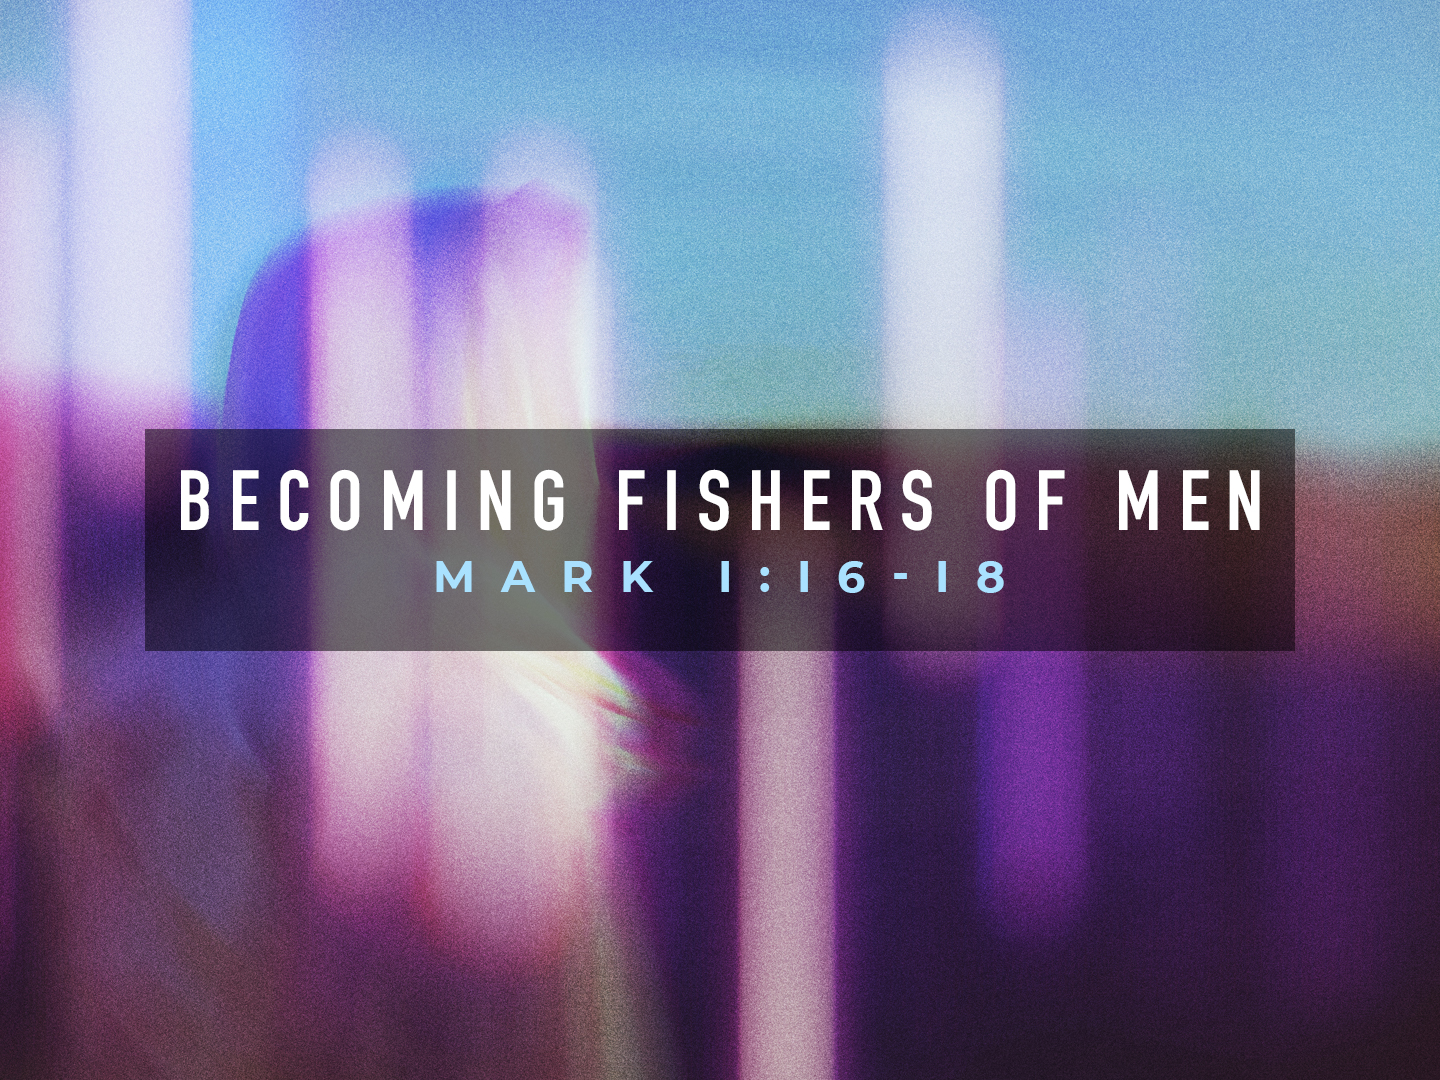 Becoming Fishers of Men TITLE.jpg